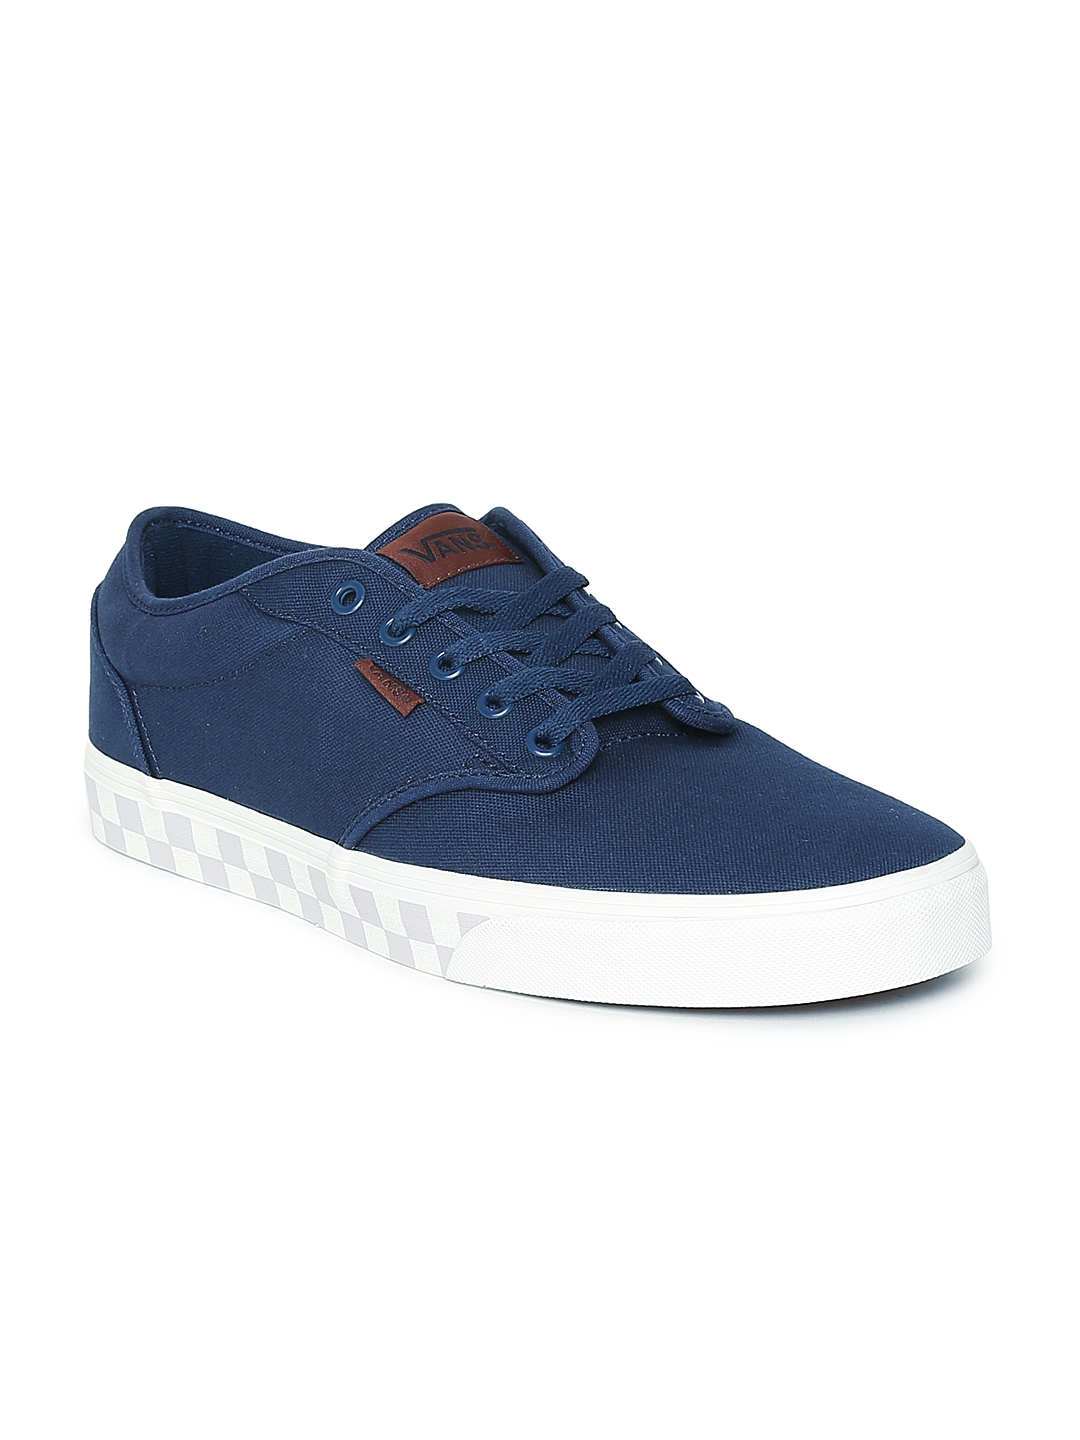 e6cc0d53e3e3fb Buy Vans Men Navy Blue Atwood Sneakers - Casual Shoes for Men ...